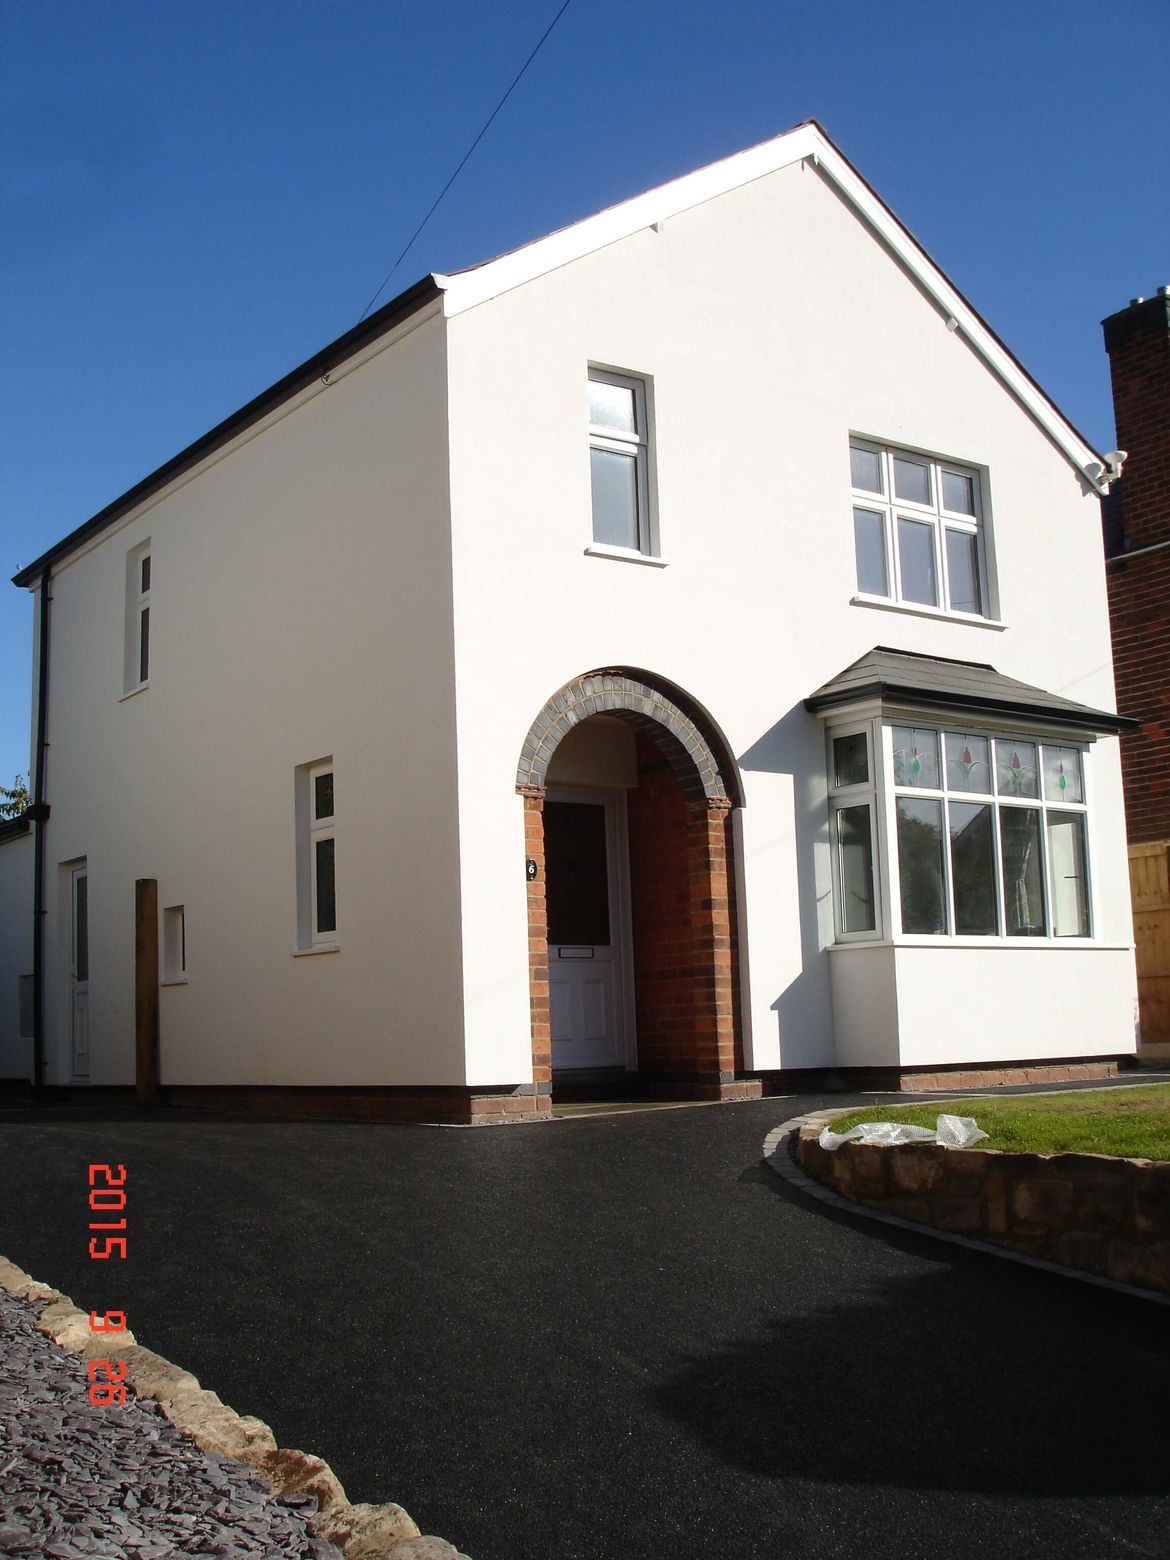 Alsecco External Wall Insulation Allestree, Derby